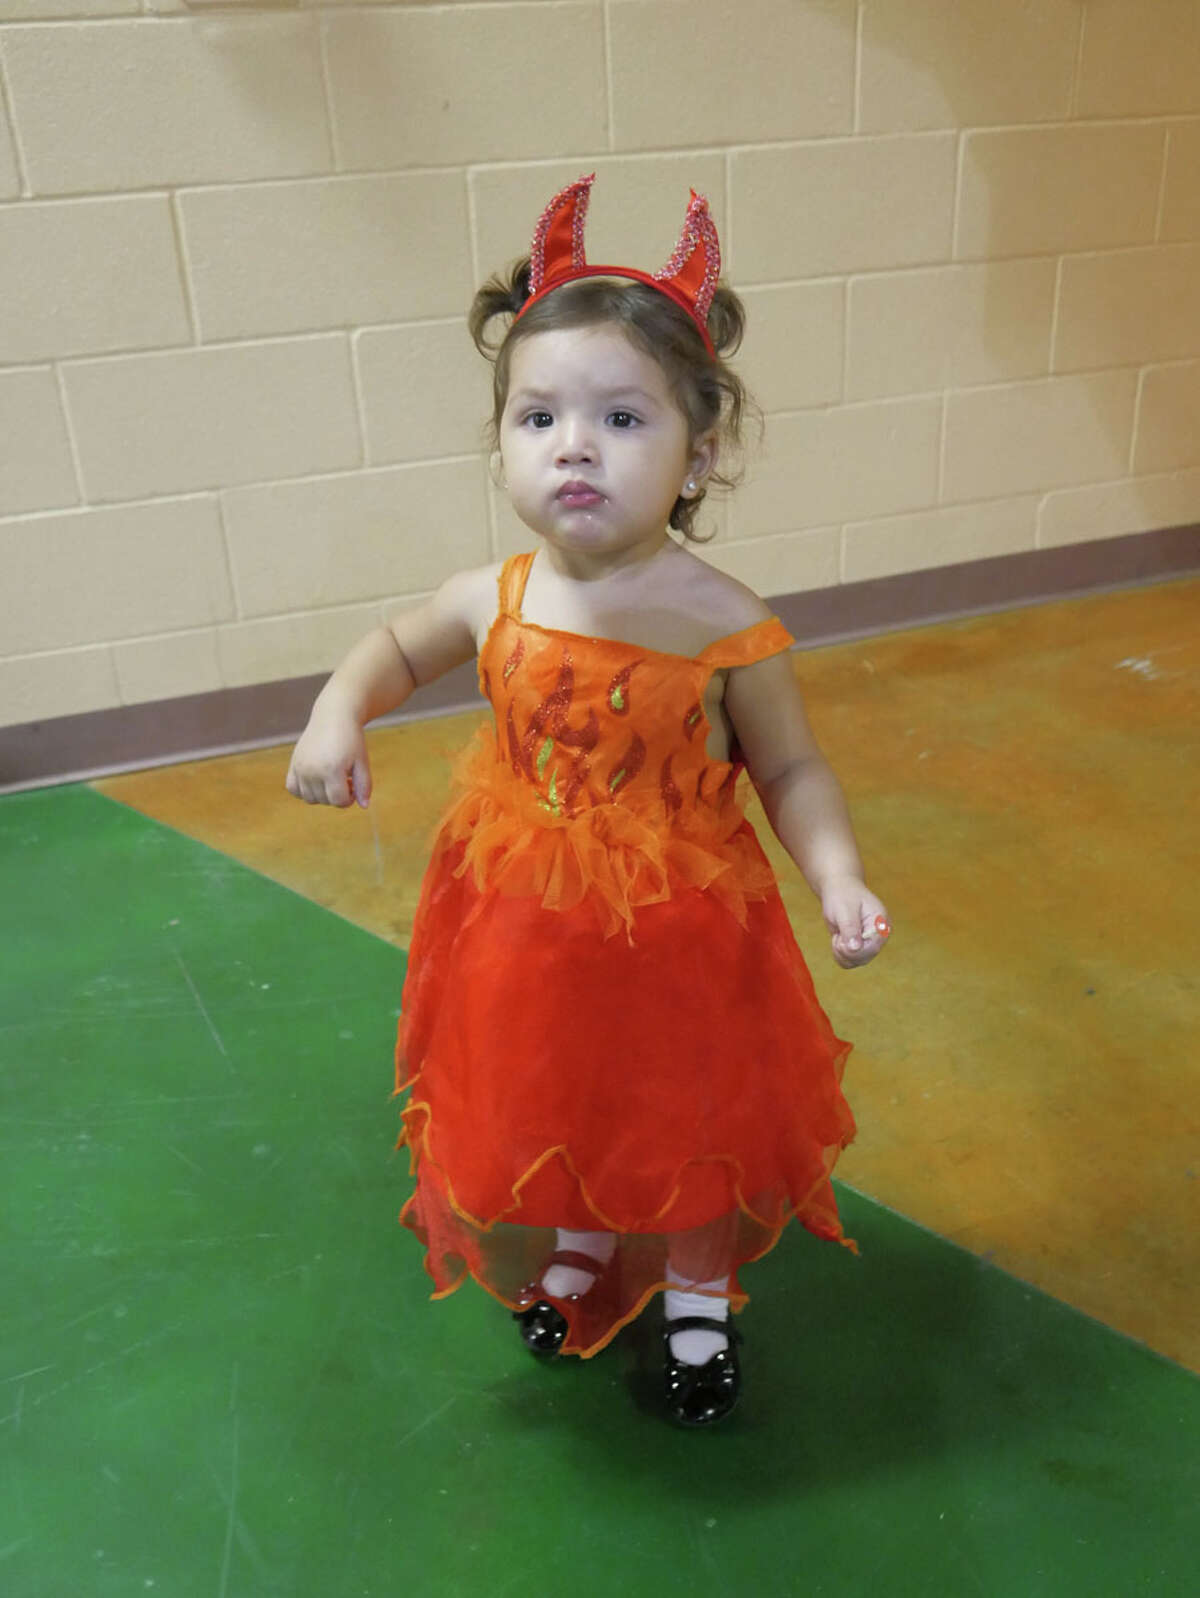 Families came out to the Eden Recreation Center as the City of Laredo hosted a haunted house, pumpkin patch and costume contest for Laredo youths.